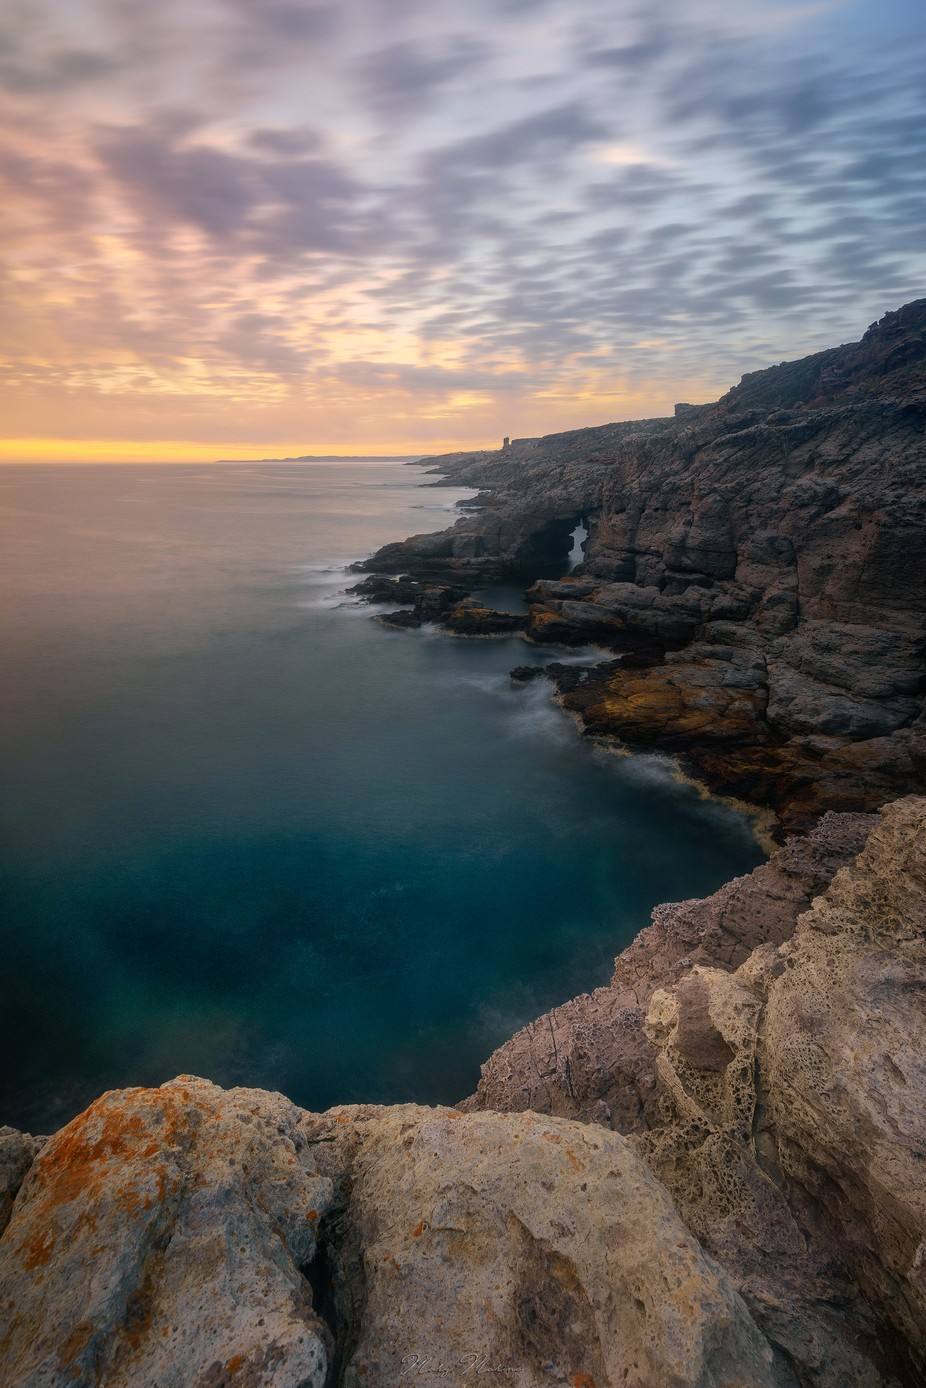 Sardinia sunset by MaryMarino - Social Exposure Photo Contest Vol 16